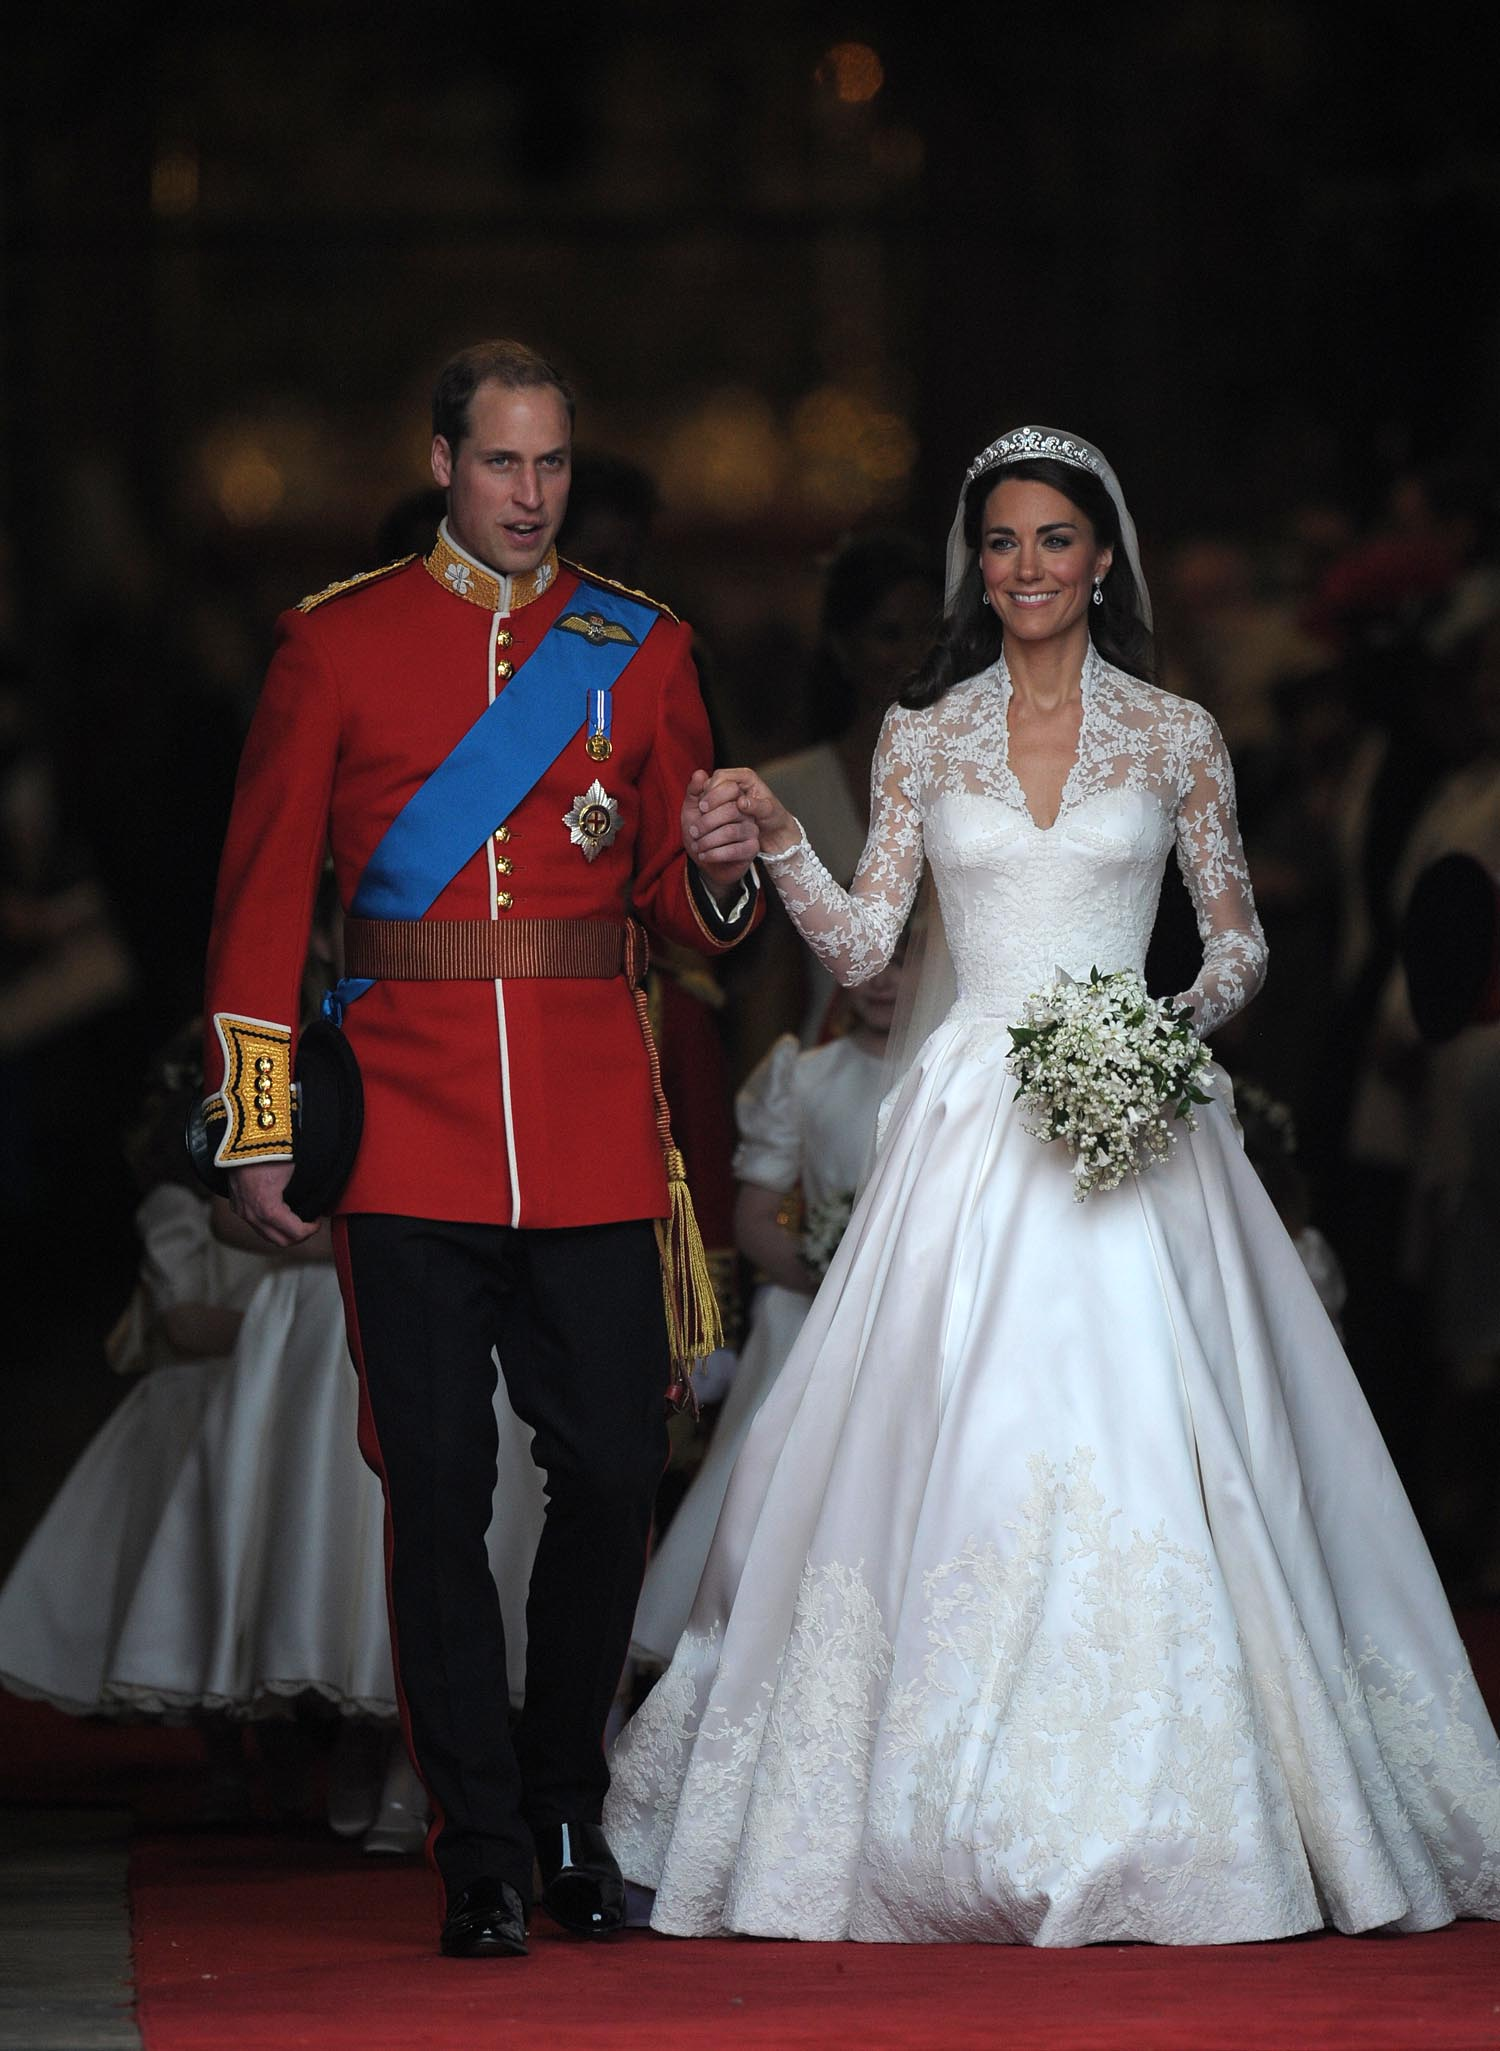 Catherine Marries her Prince Charming – The People's Wedding